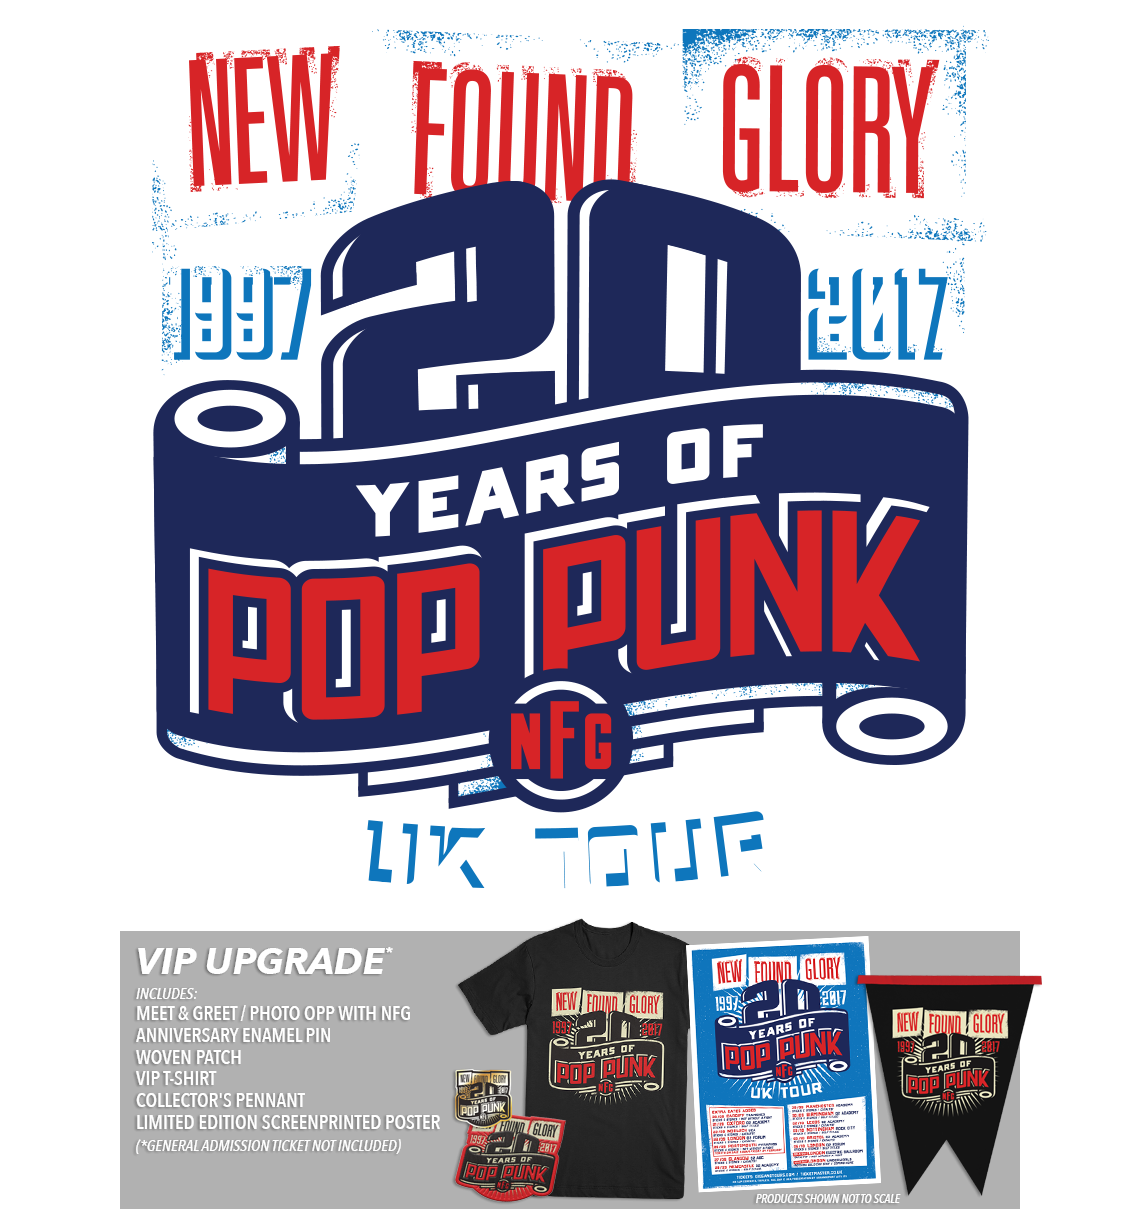 New Found Glory 20 Years of Pop Punk UK Tickets